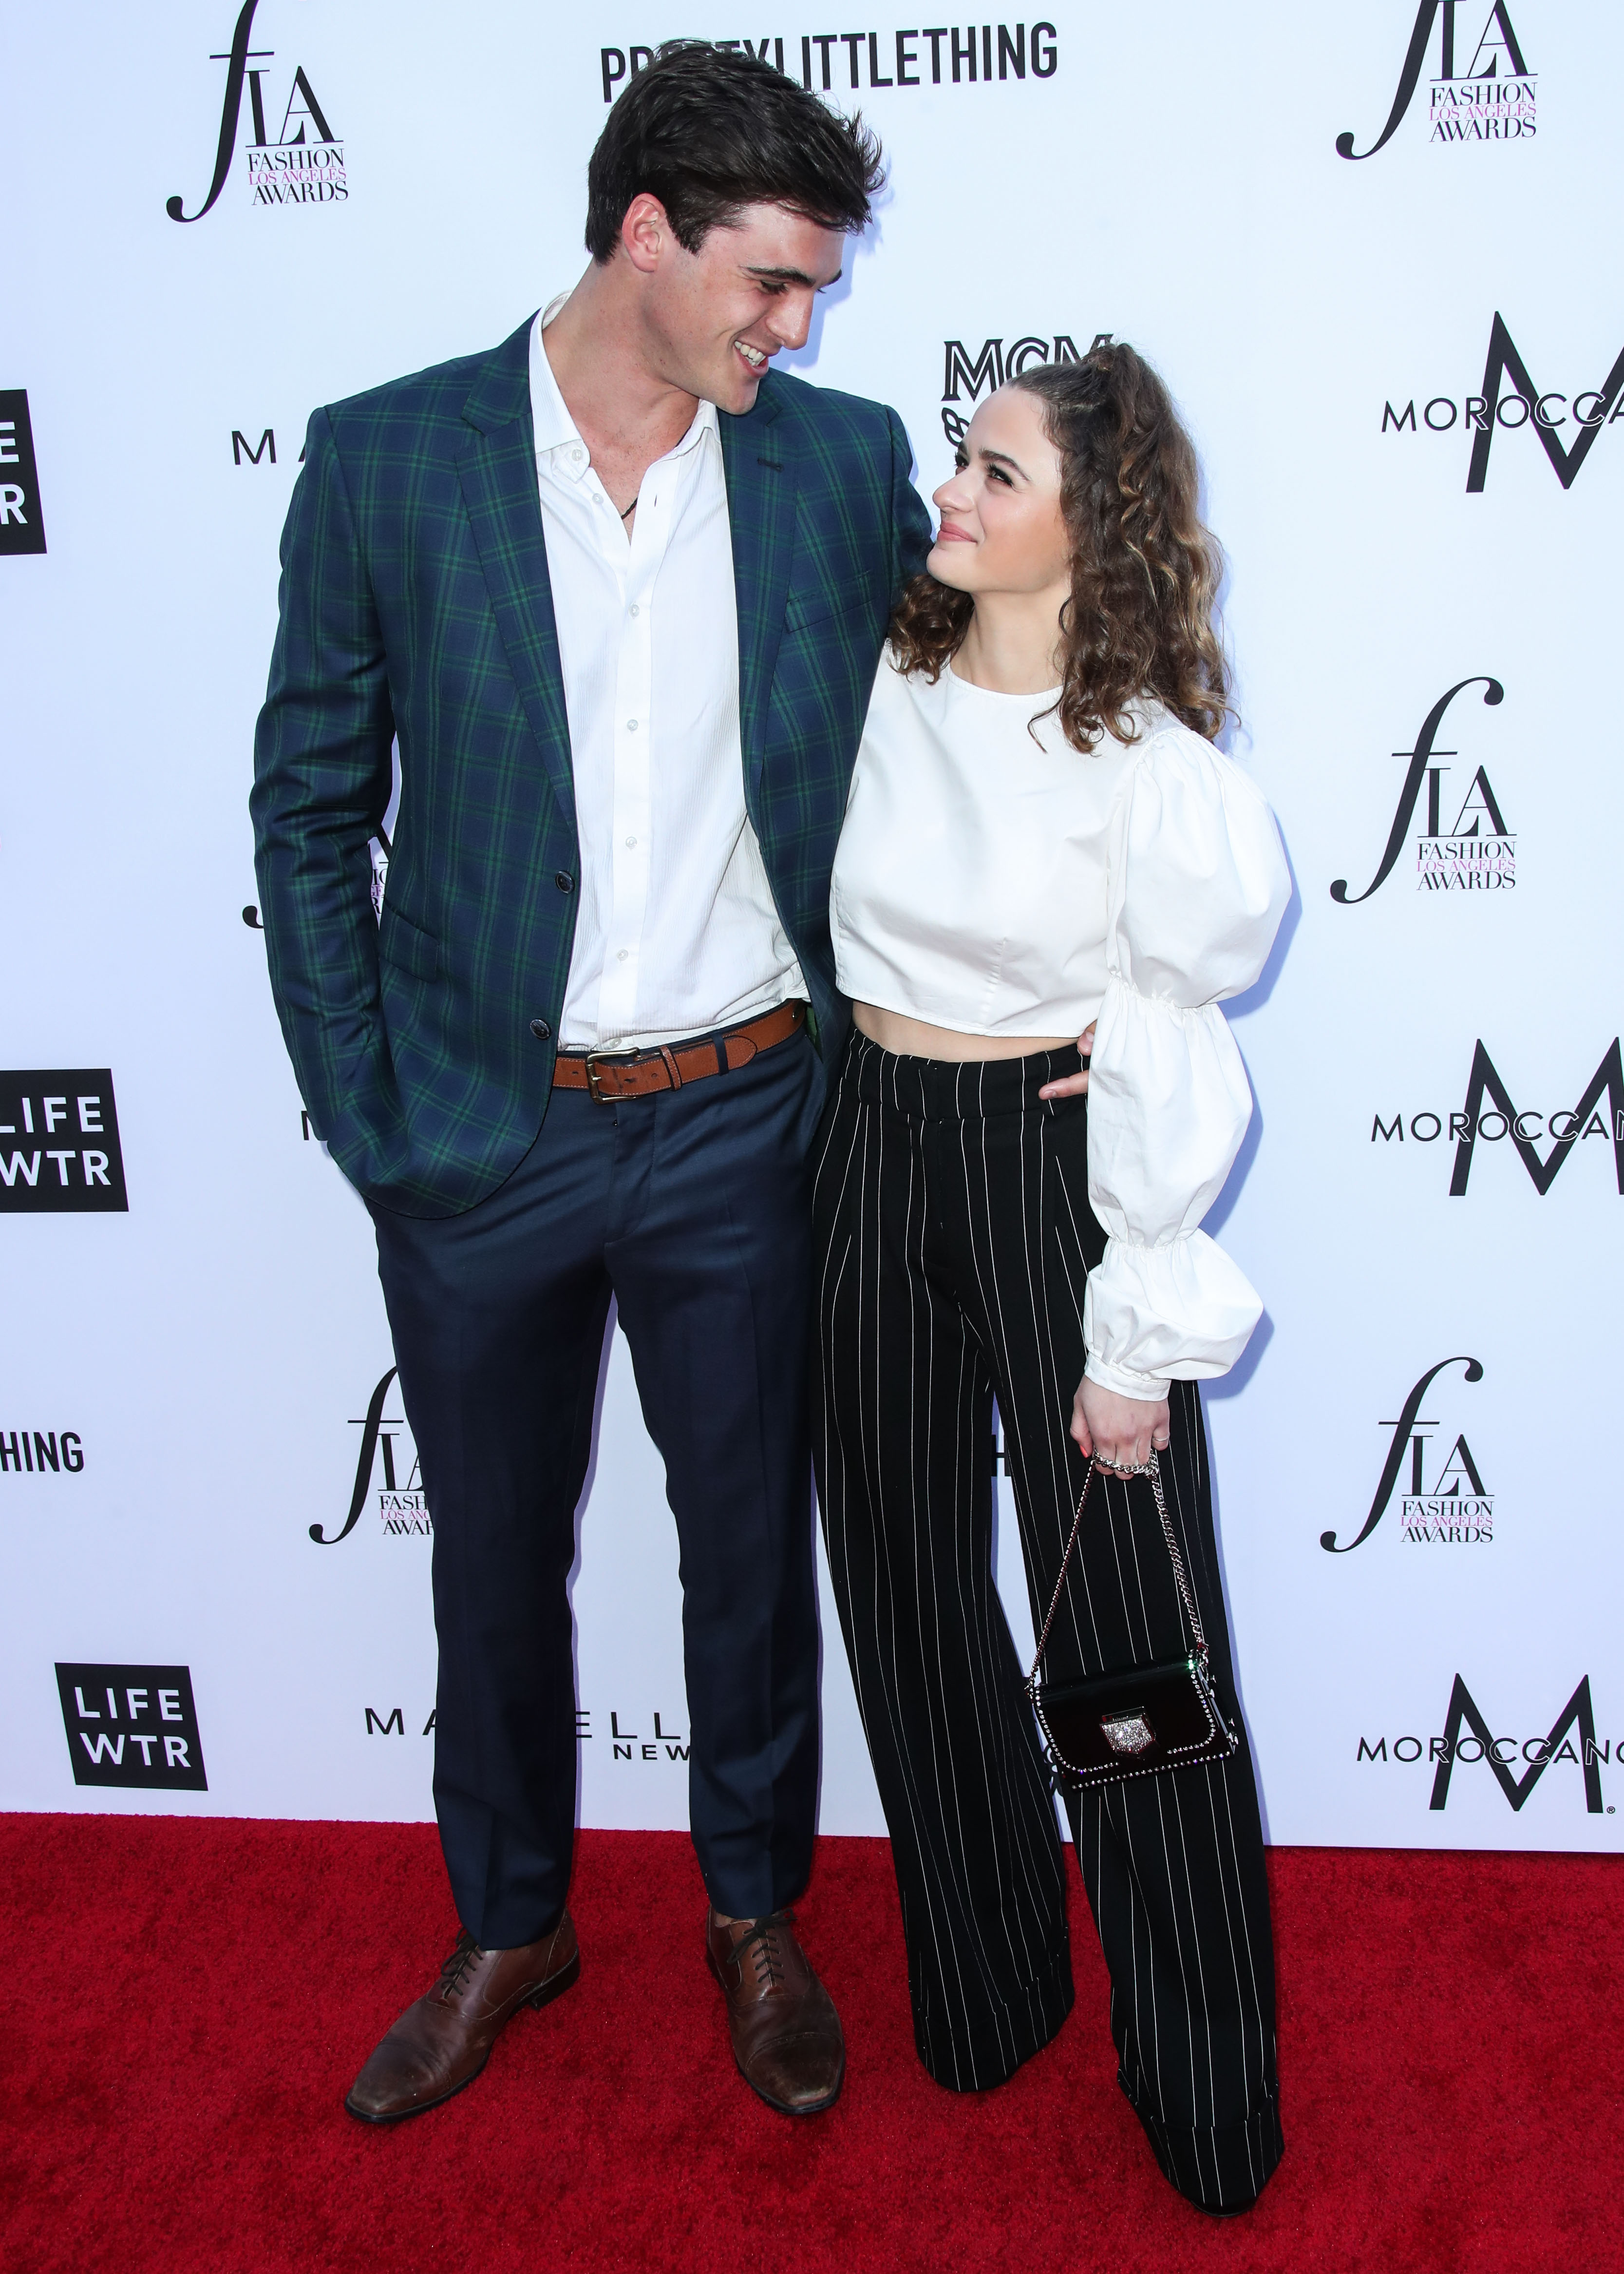 Joey King And Jacob Elordi A Timeline Of Their Relationship